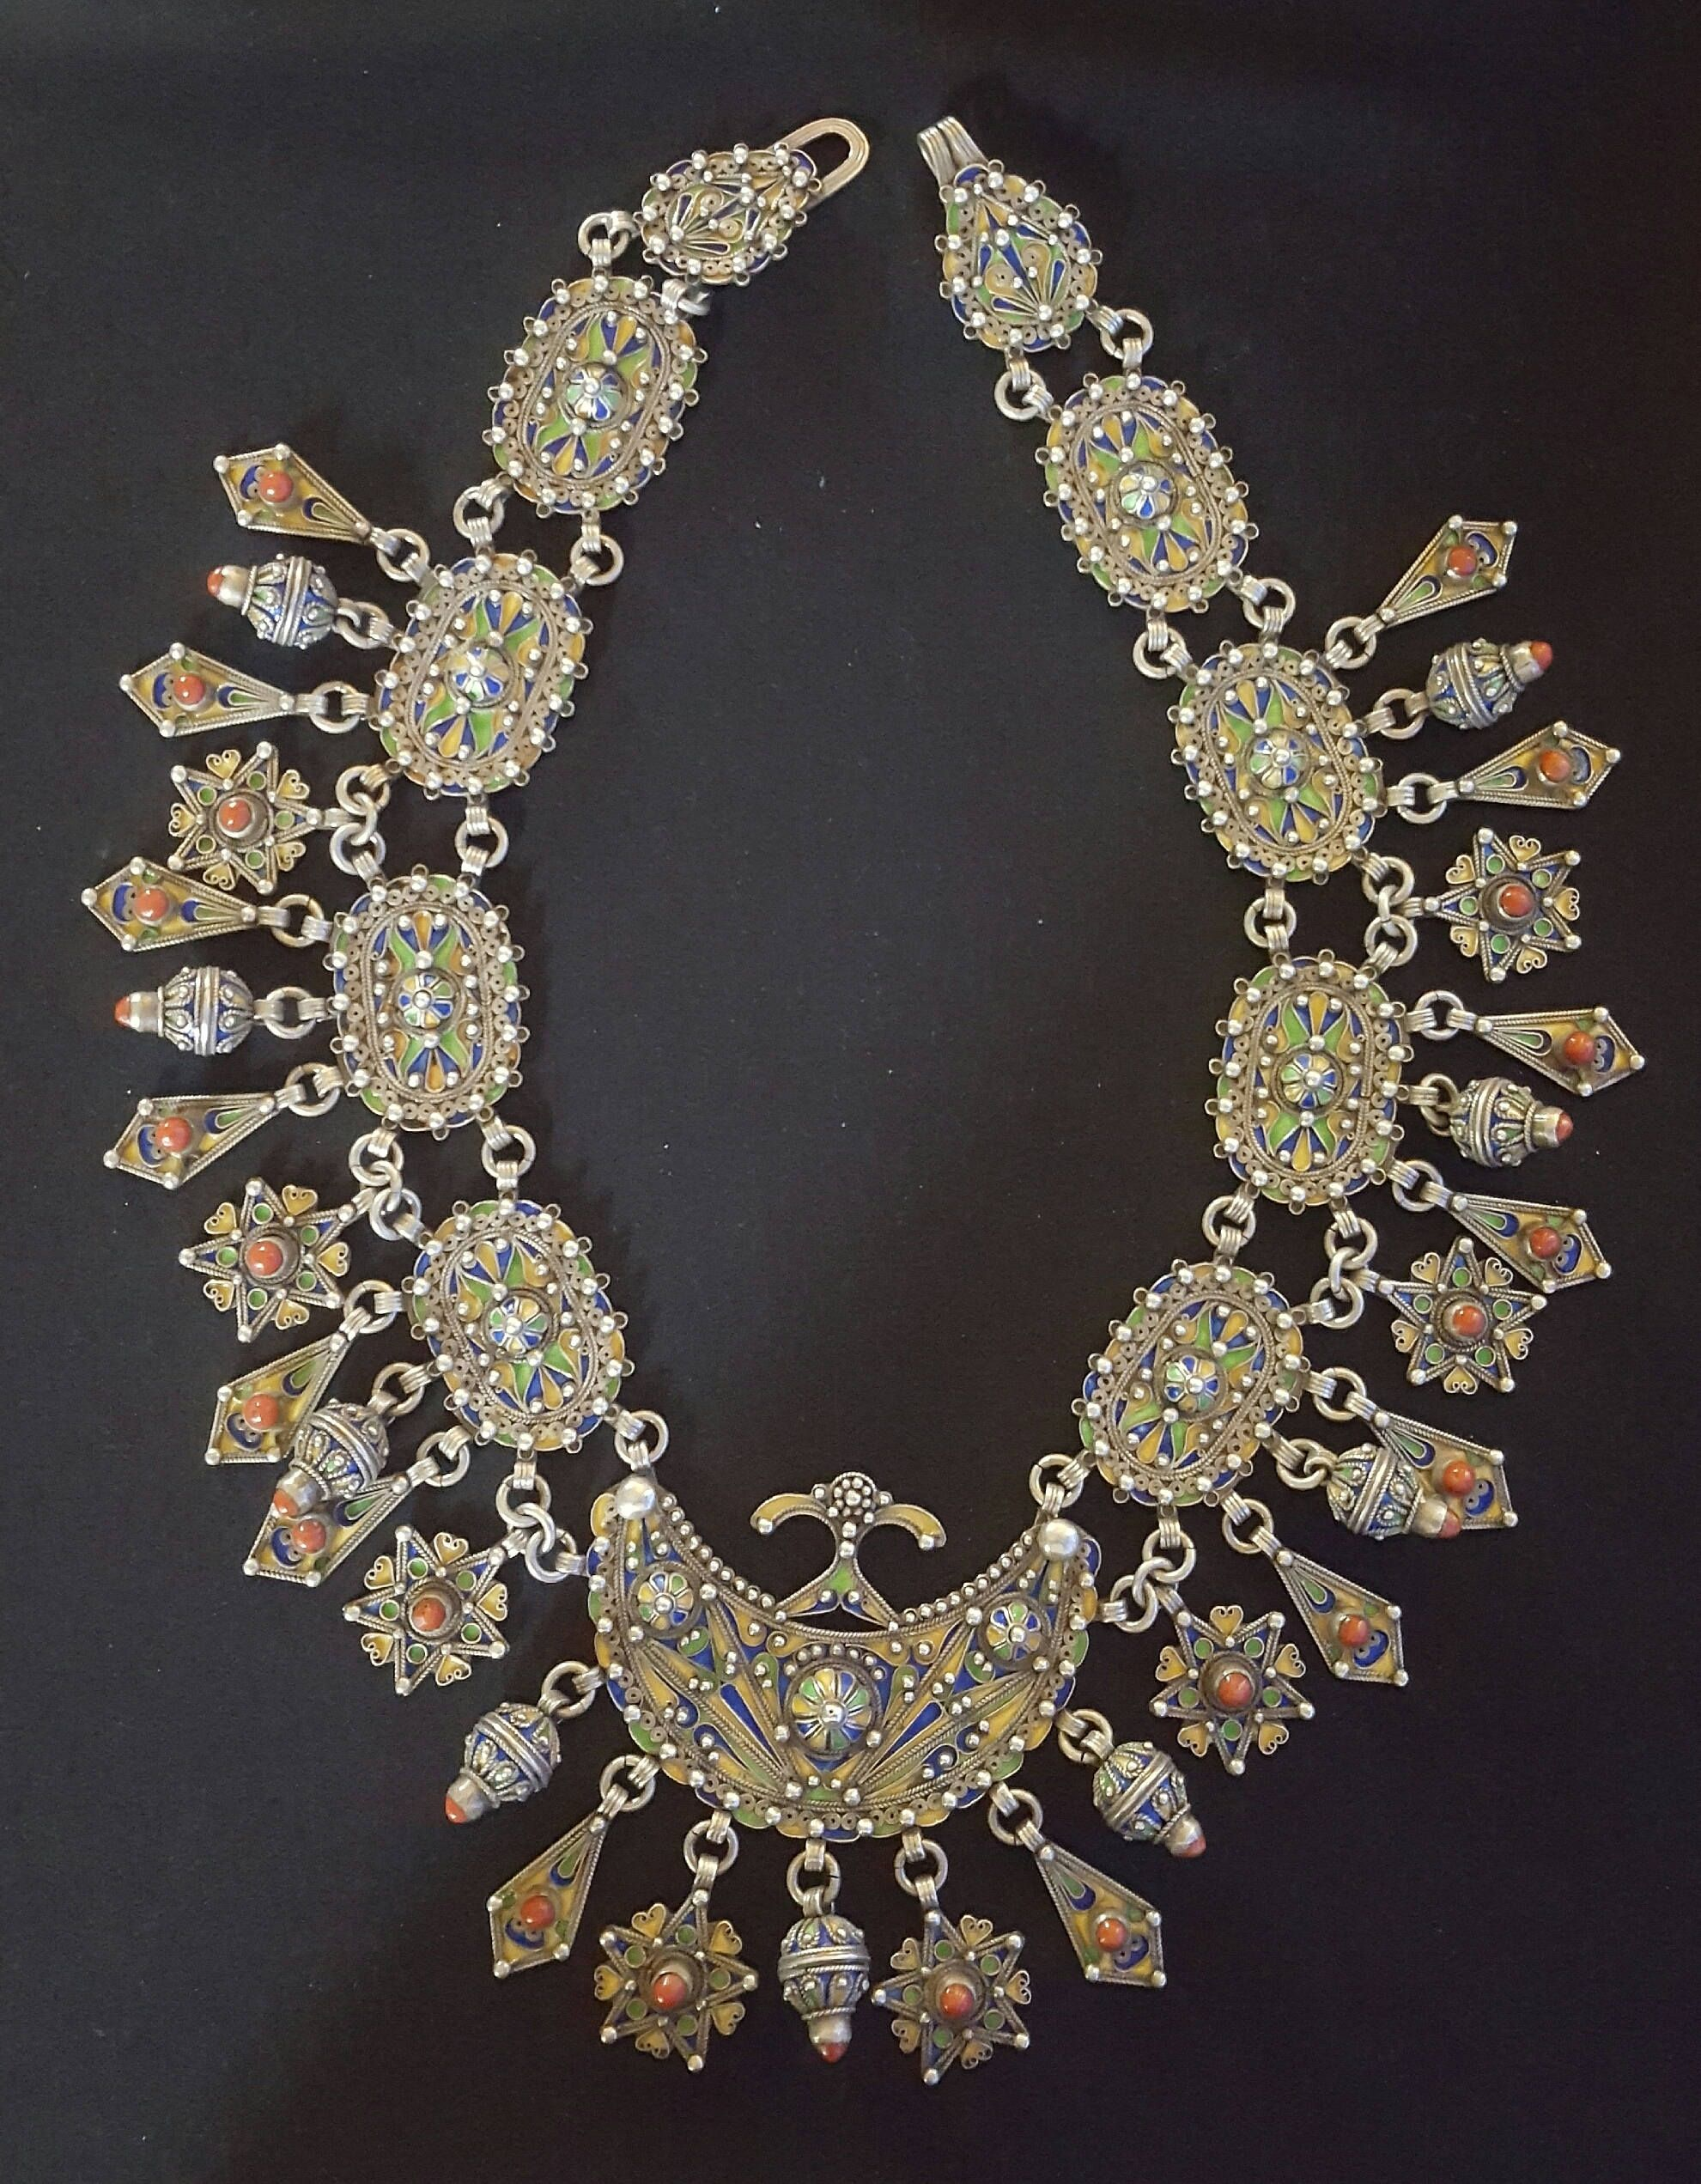 our necklace broche jewelry to inspire of the brides silver archive morocco desi world weddings berber around